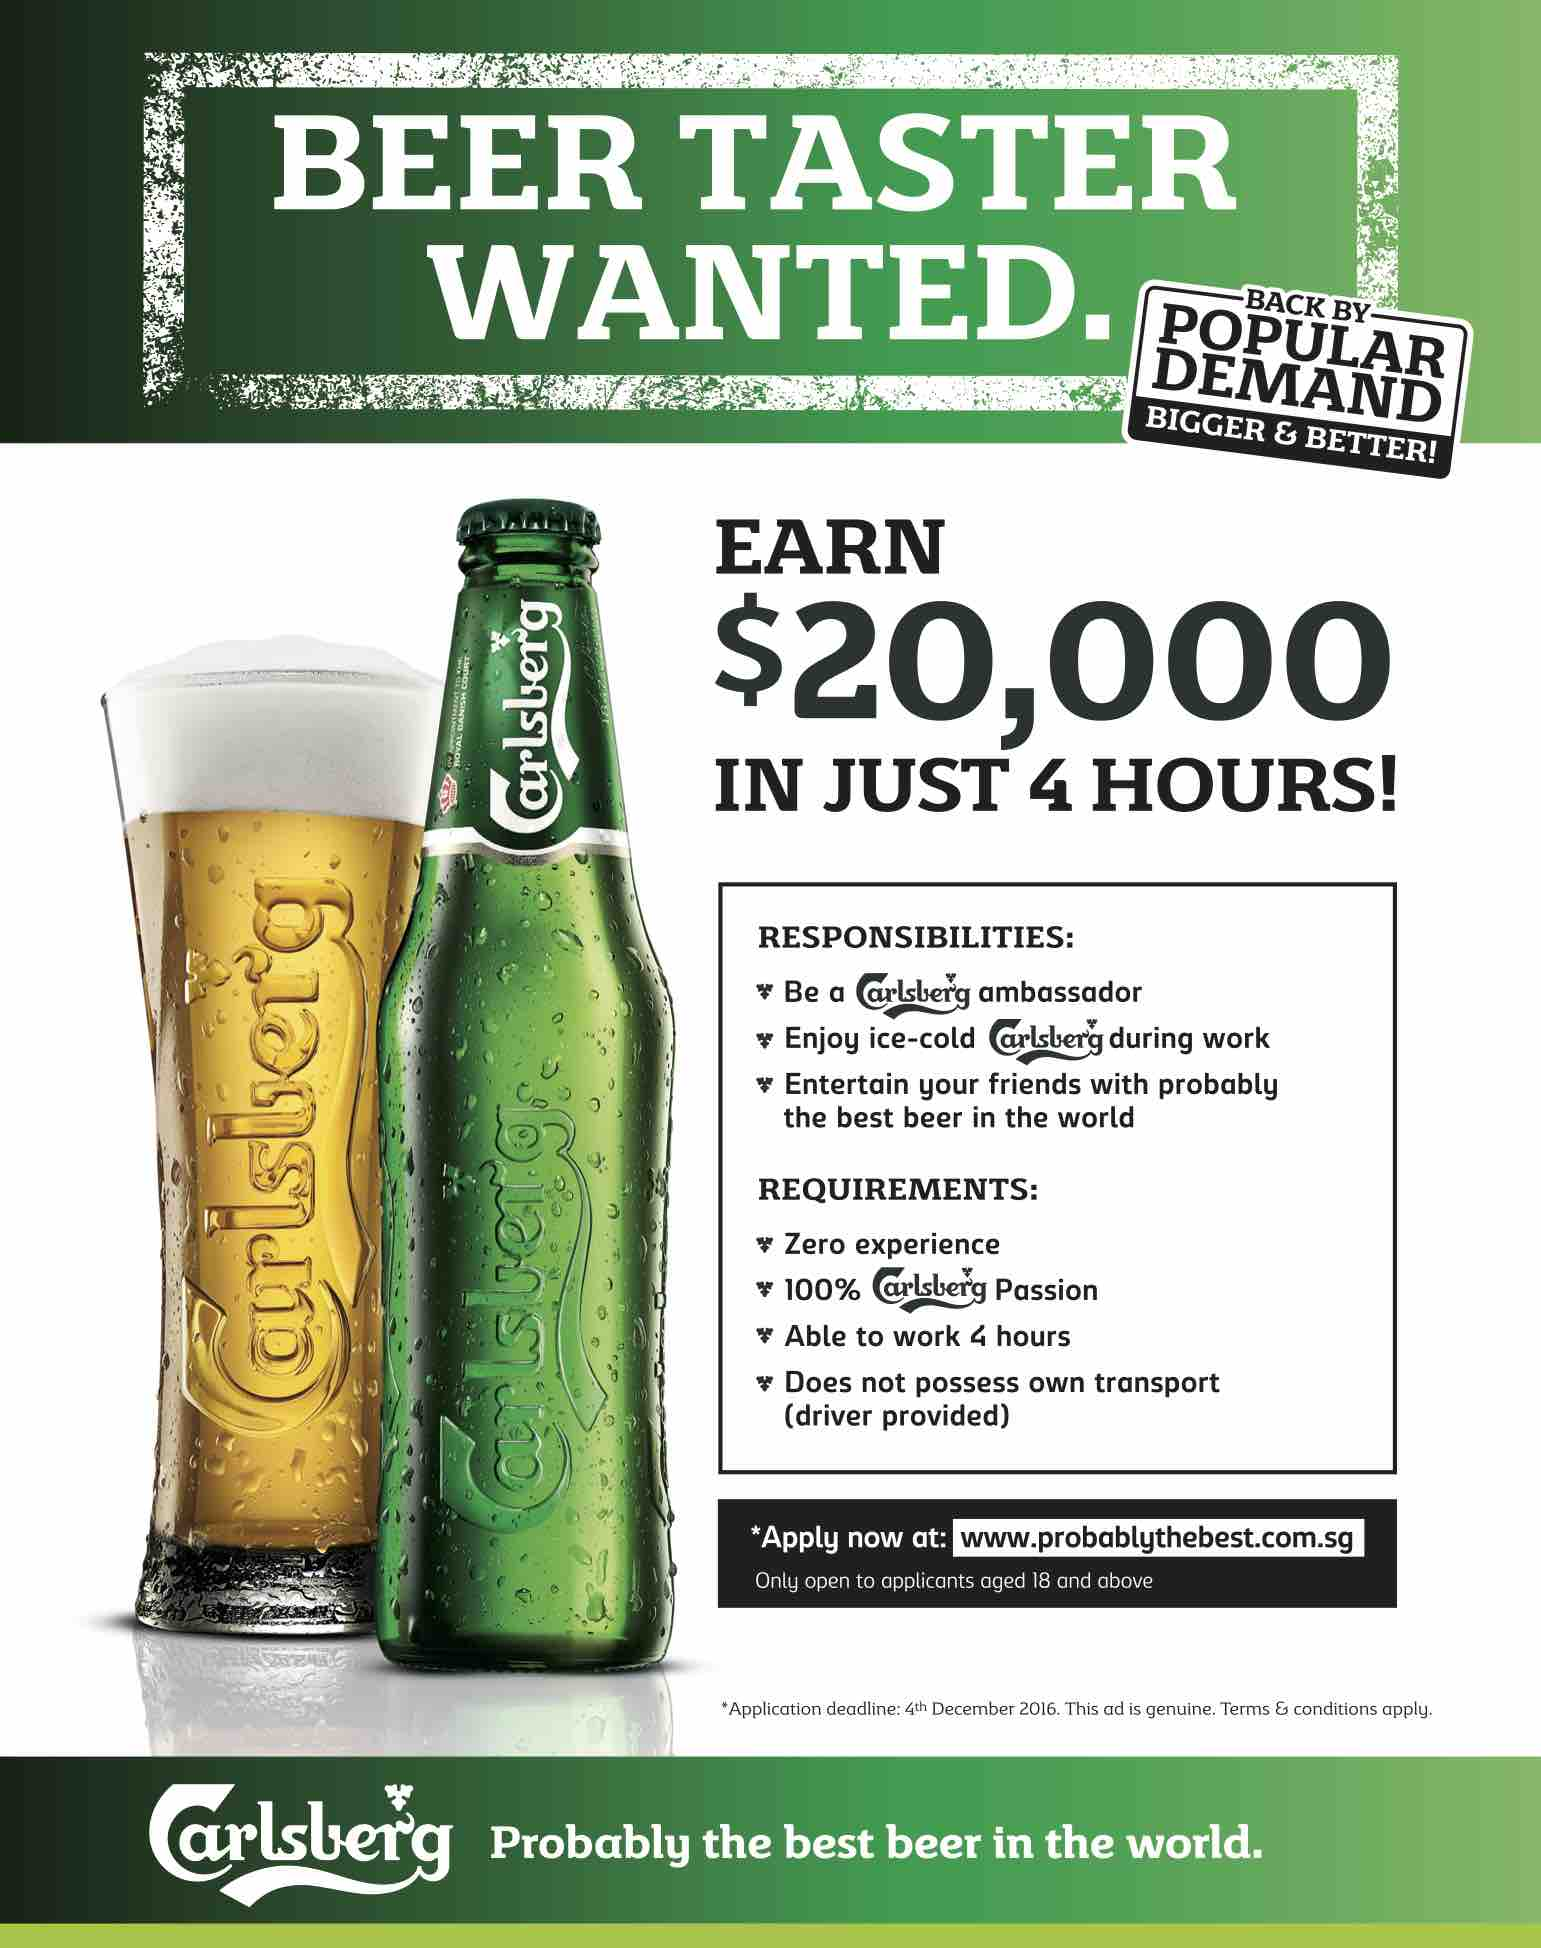 carlsberg-probably-the-best-job-in-the-world-aspirantsg